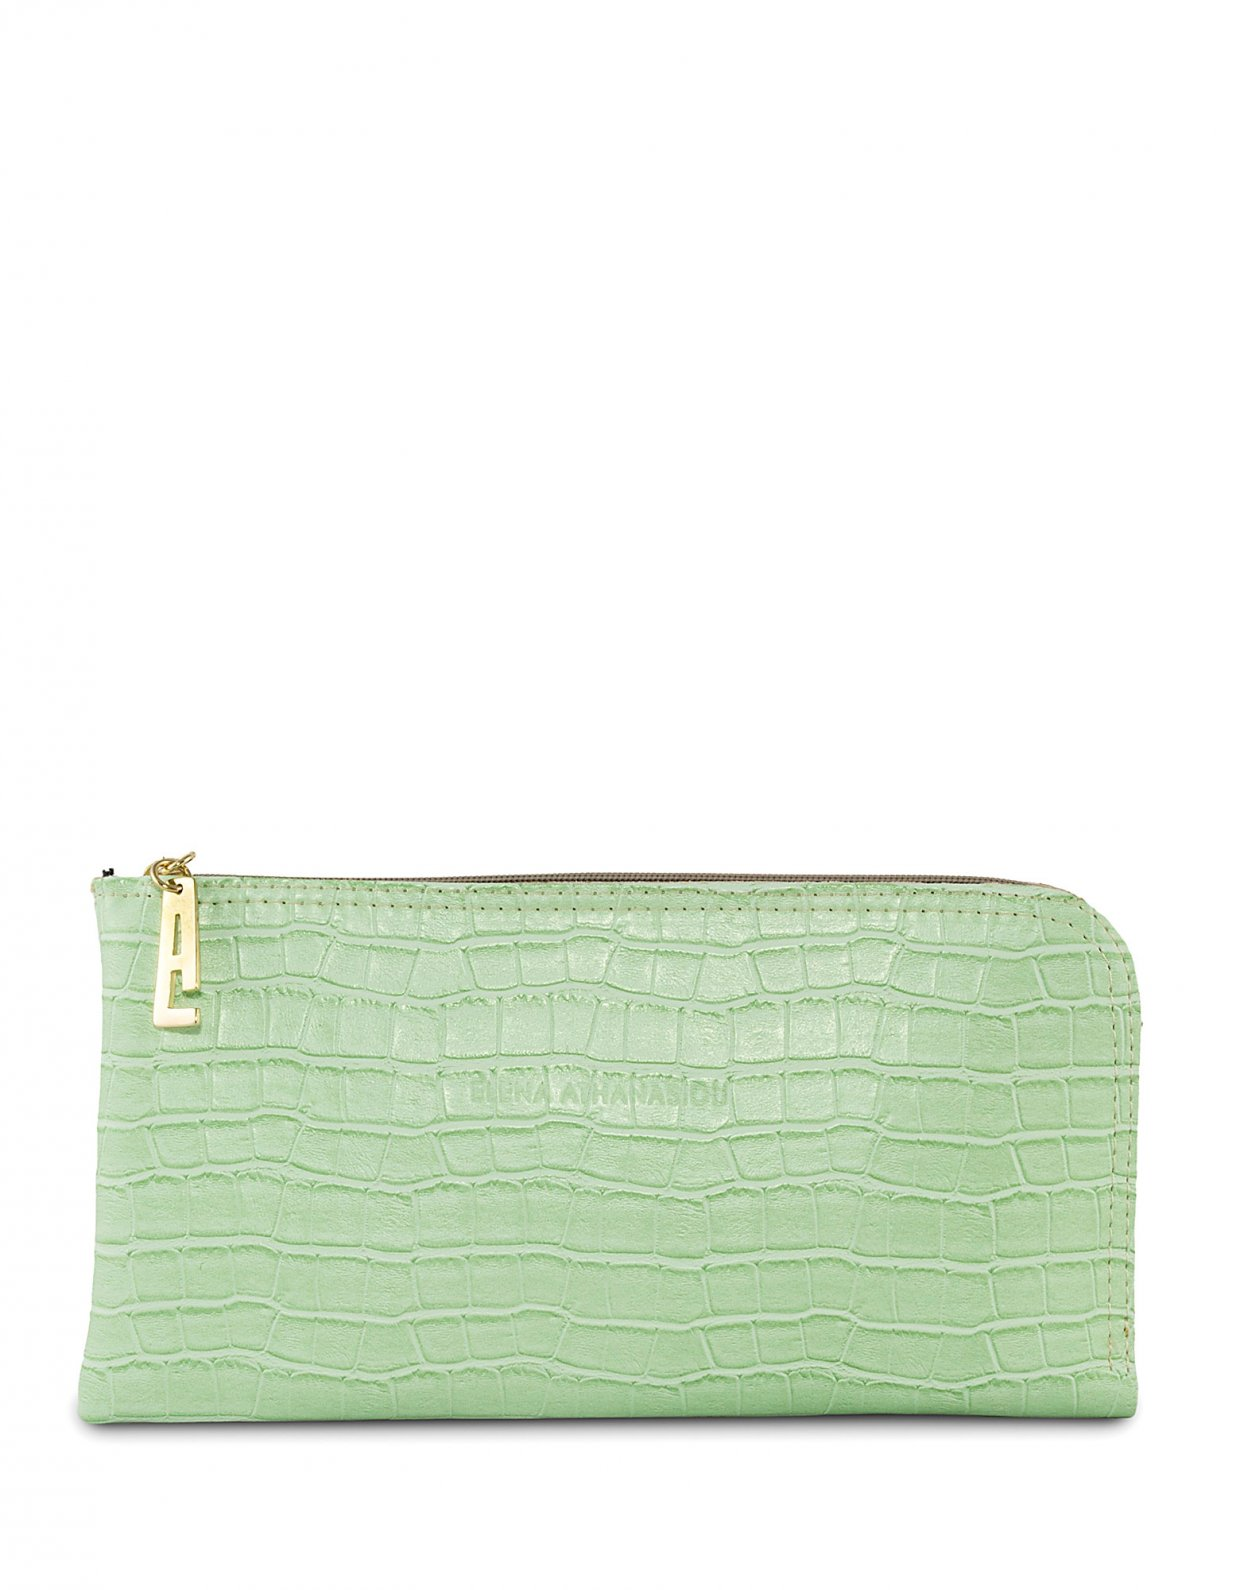 Elena Athanasiou Clutch bag mint croco